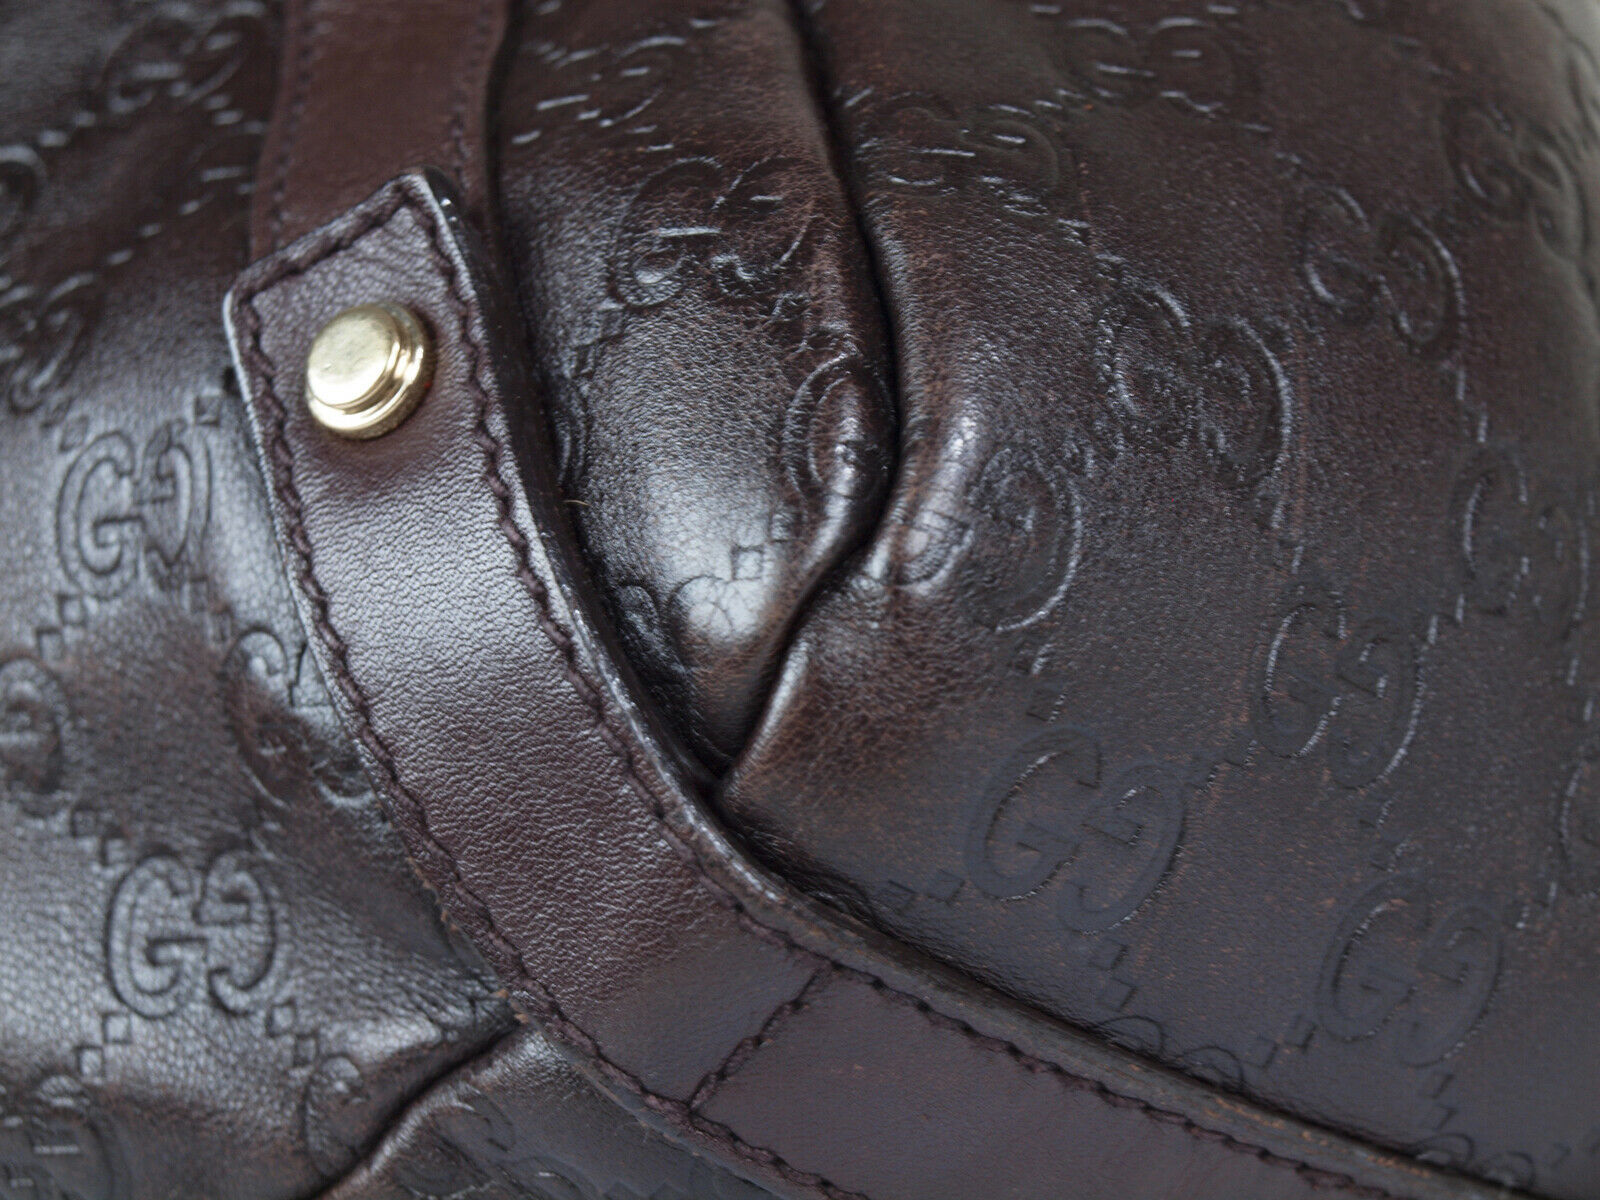 Auth GUCCI Guccissima Leather Dark Brown Shoulder Bag GT2152  image 5